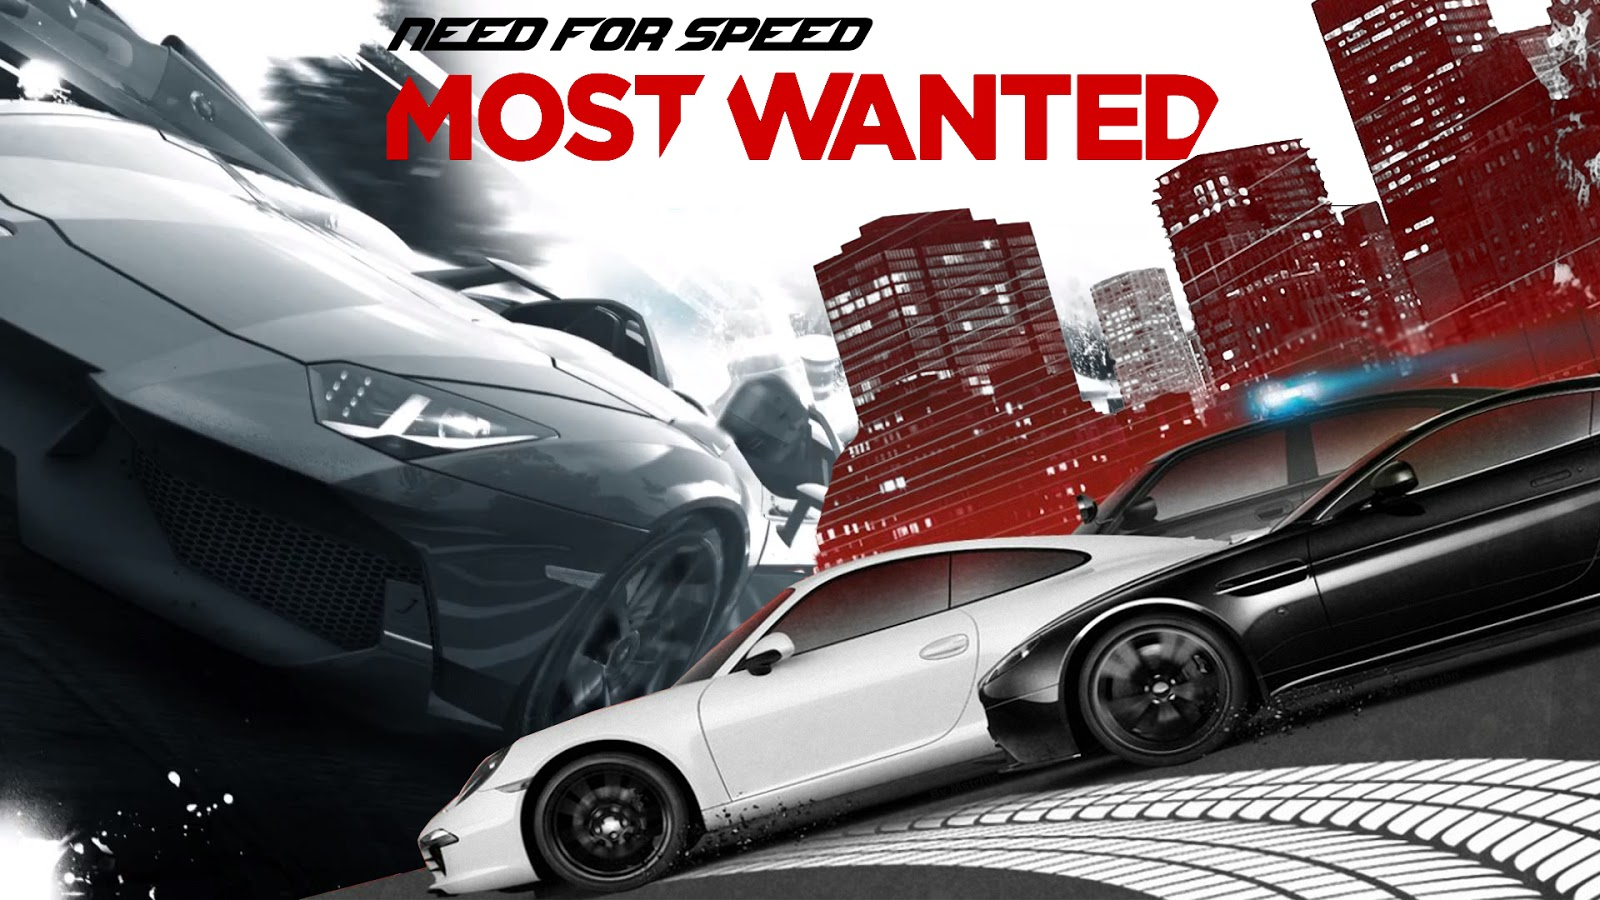 Download Need for Speed Most Wanted v1.3.71 APK Data (Mod ...